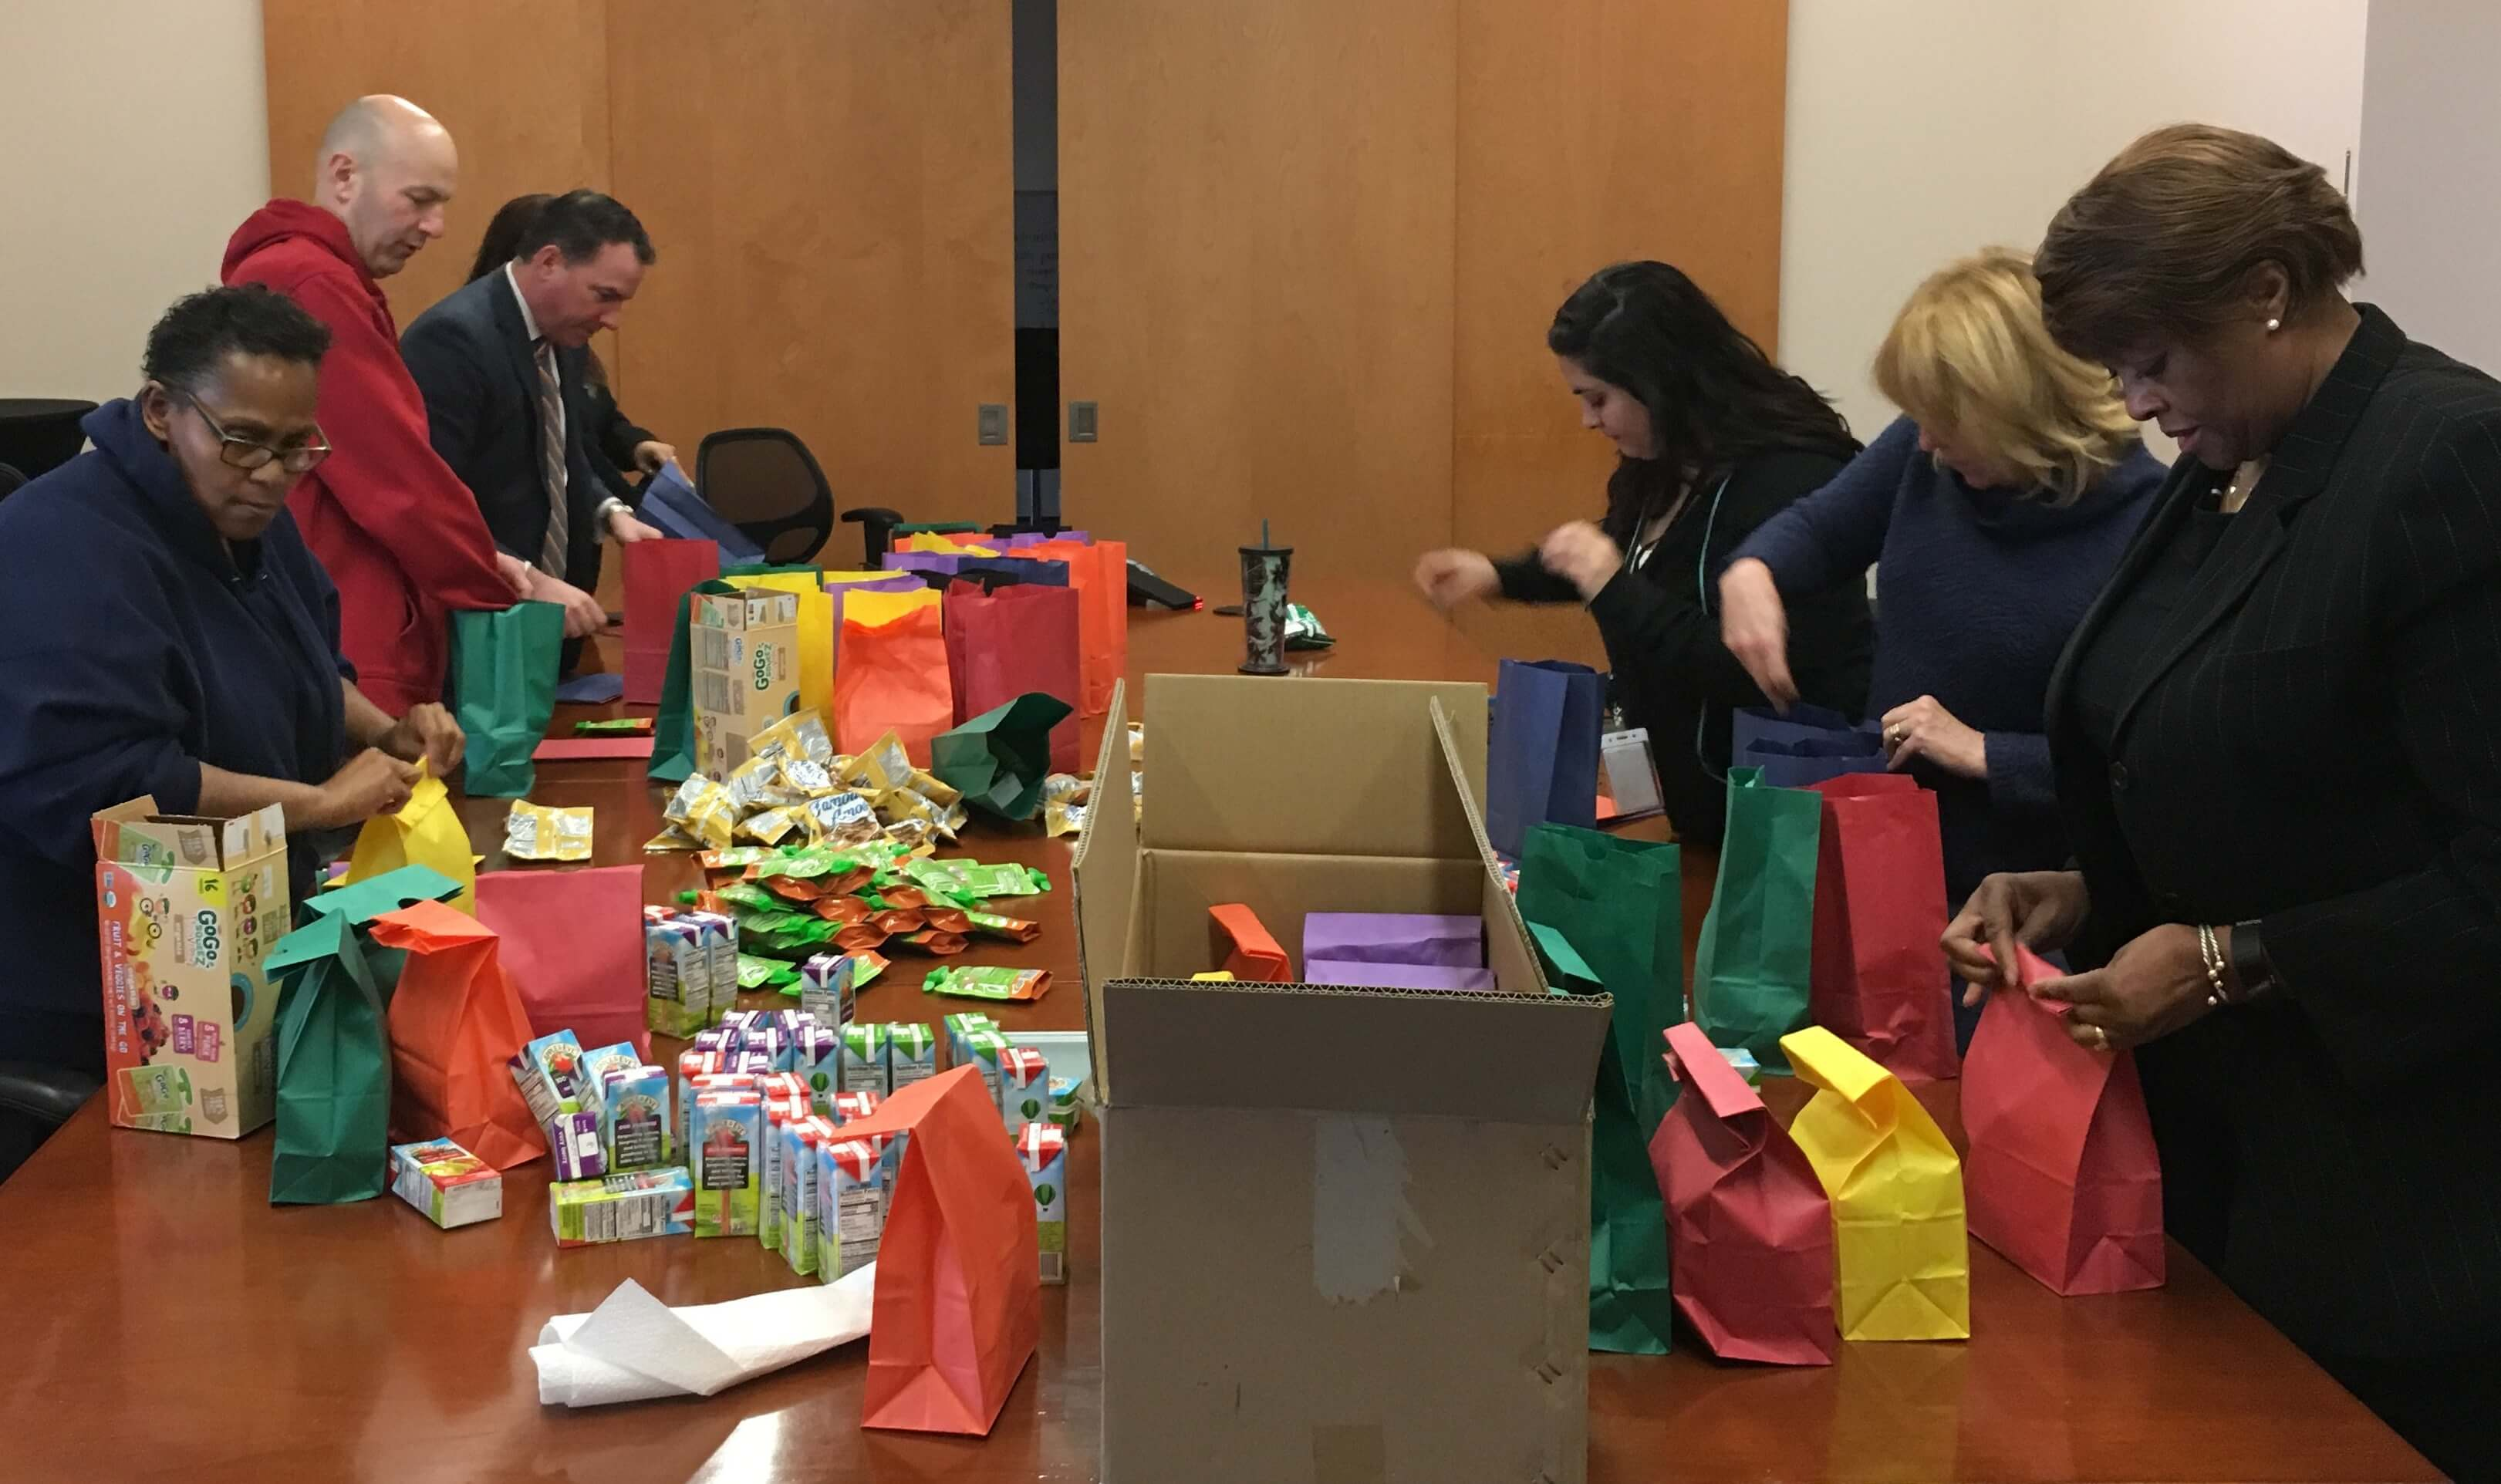 2018-Meridian-Community-Outreach-after-school-snack-packs-for-Cornerstones1-685097-edited.jpg